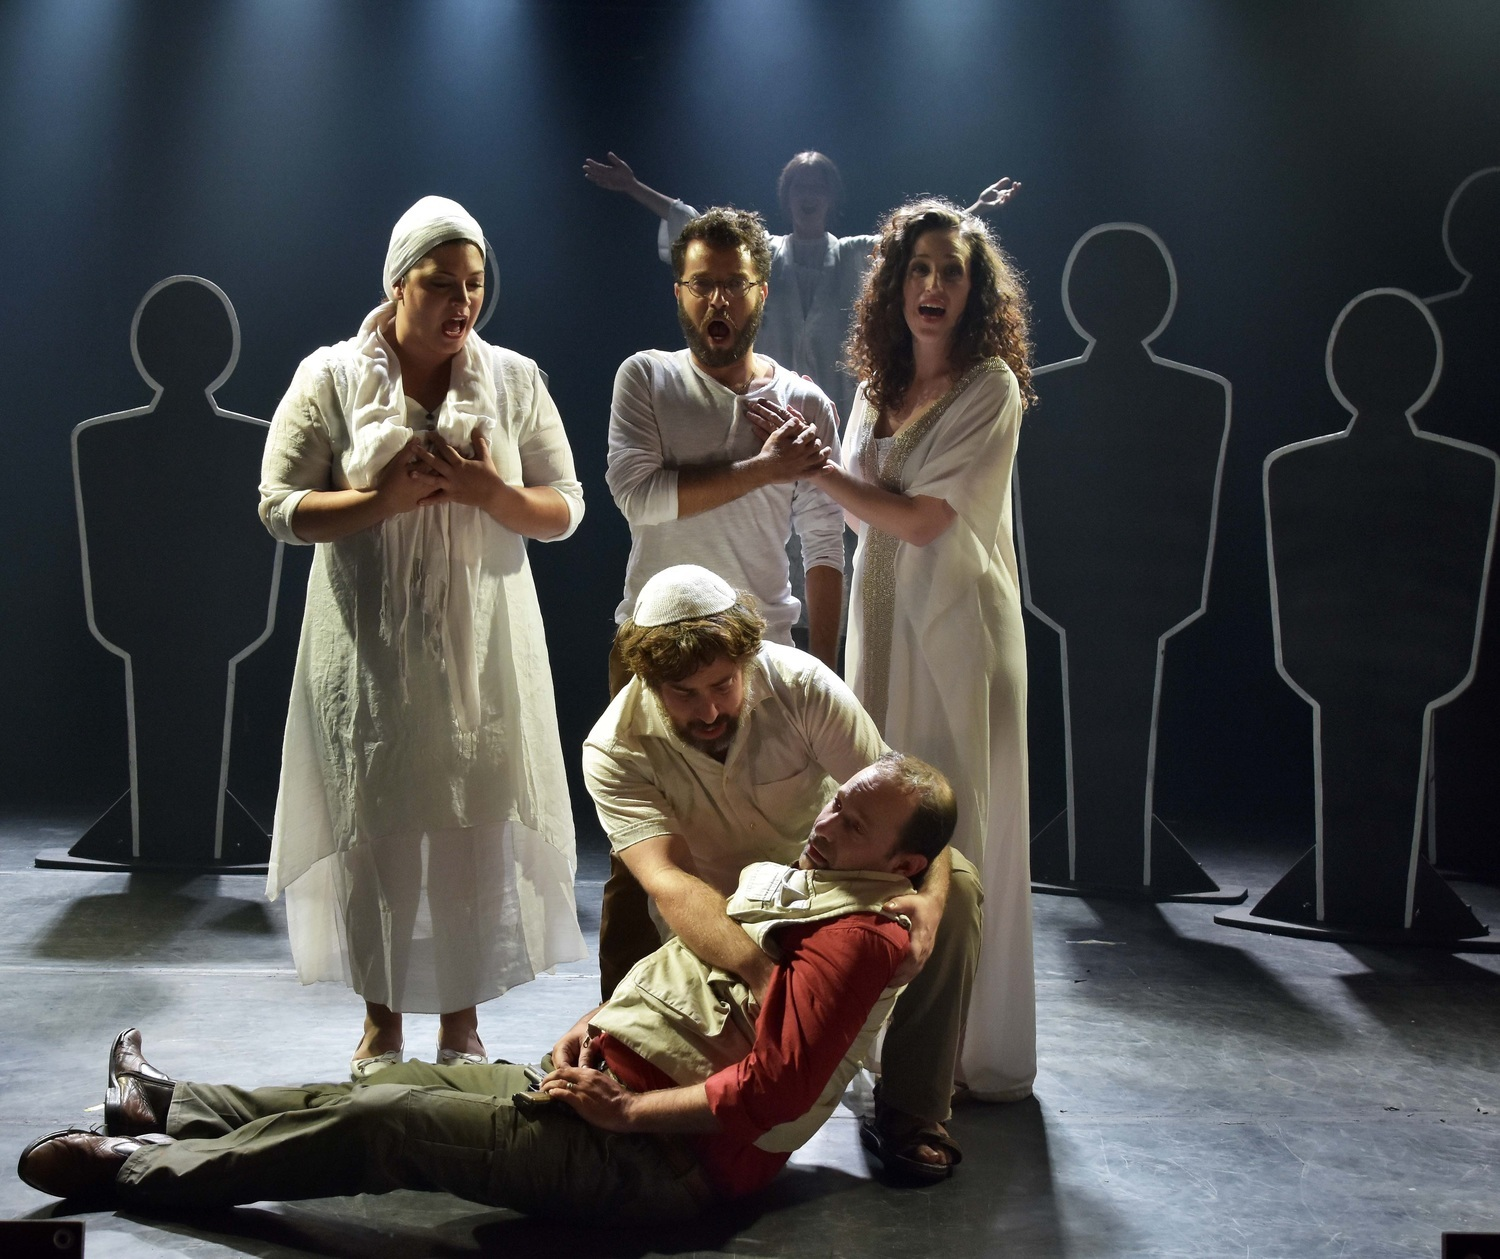 BWW Review: FEAR OF THE EVENT at Tmu-na Theater